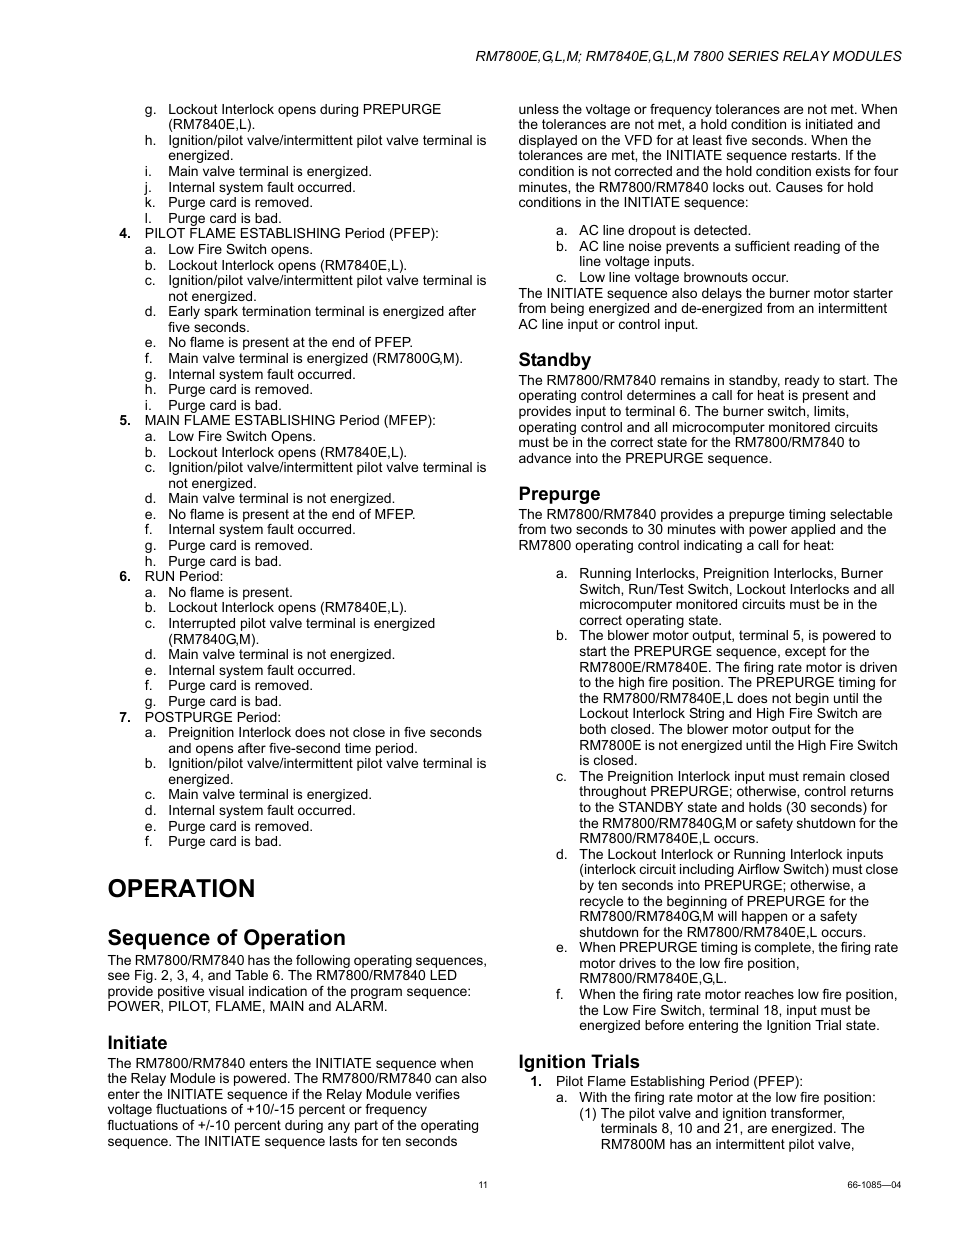 Operation Sequence Of Initiate Honeywell Rm7800g User Motor Restart Control Relay Manual Page 11 16